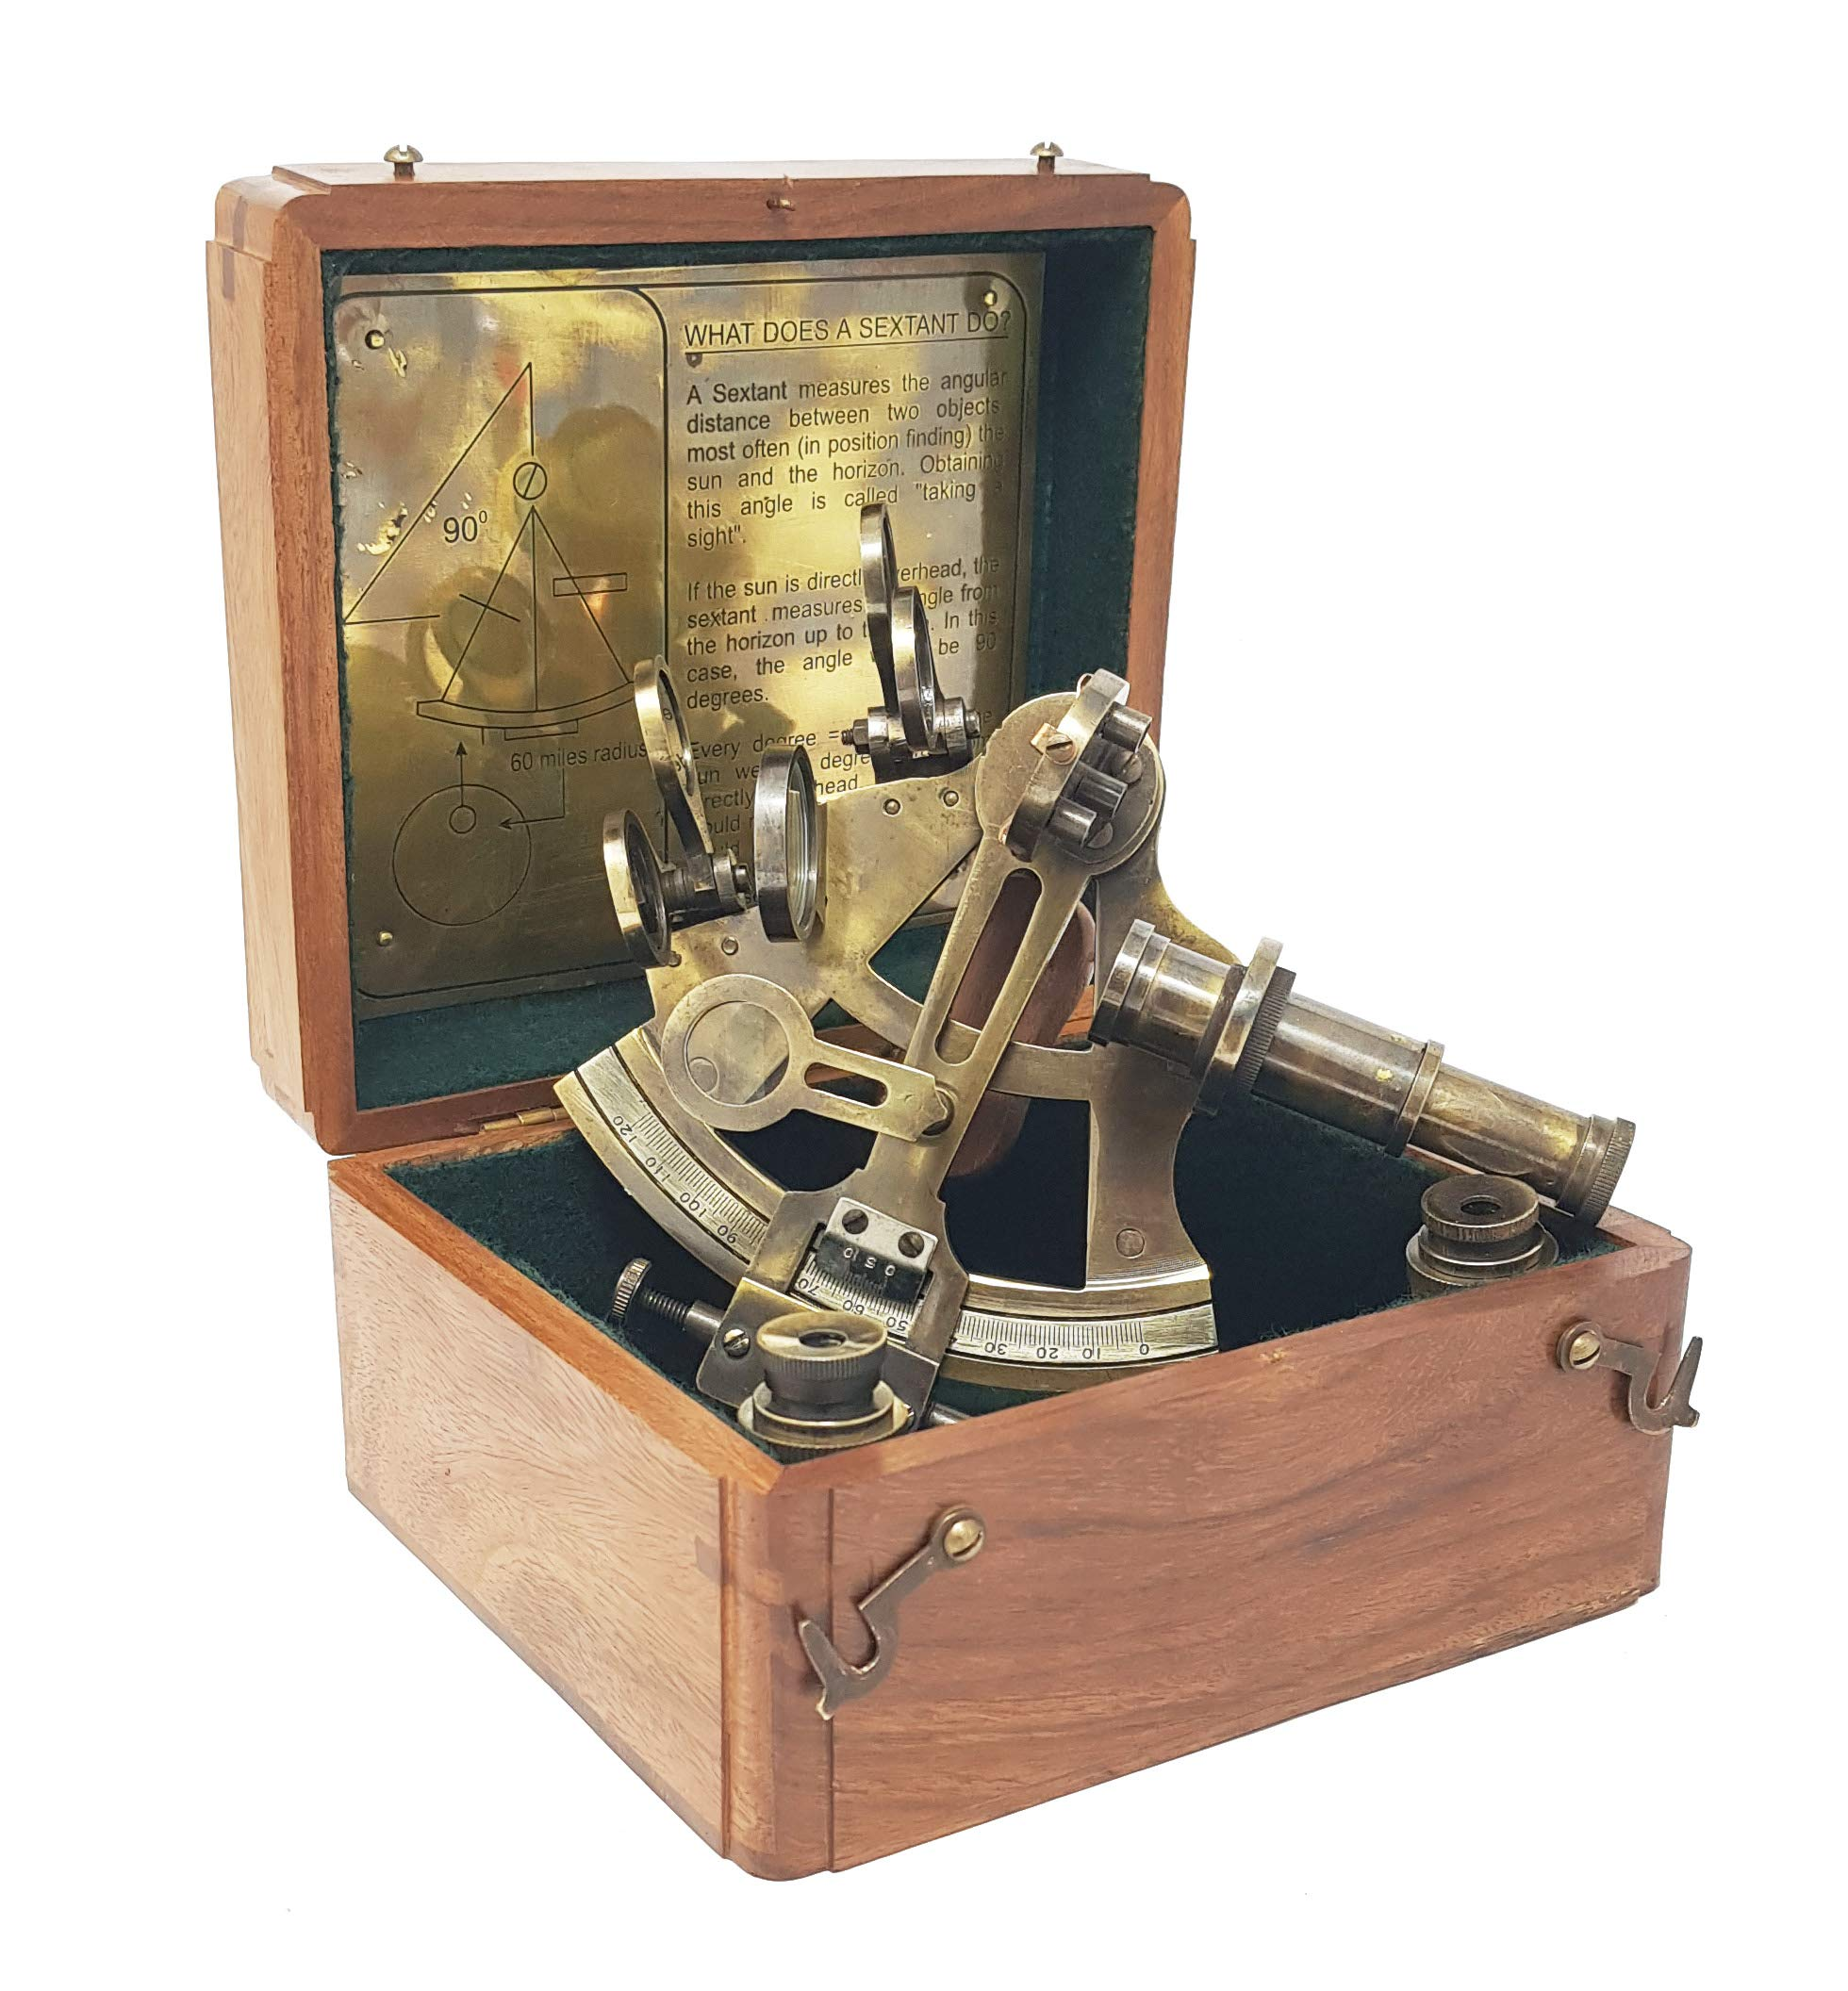 Brass Nautical - Sextant Brass Navigation Instruments Sextante Navegacion Marine Sextant in Rosewood Gift Box - Slow Motion Mechanism - 4 inches